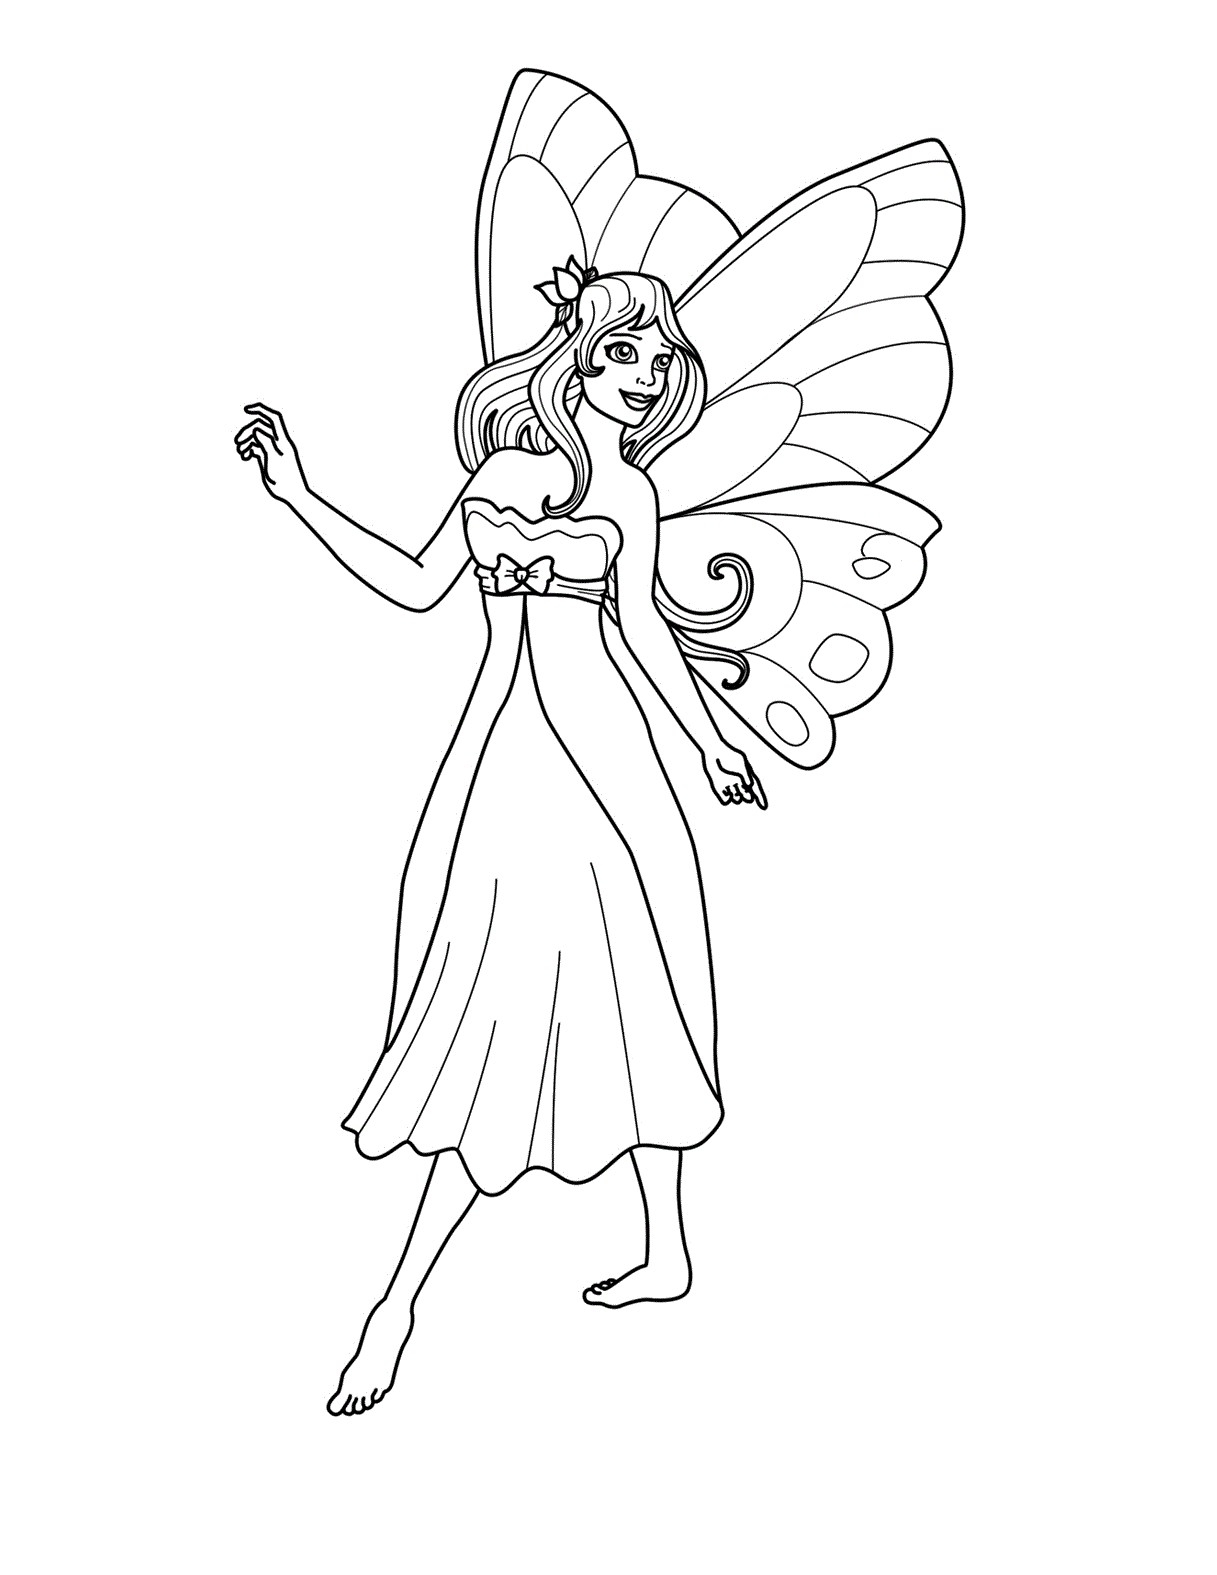 1217x1575 New Cartoon Fairies Coloring Pages Collection Printable Coloring